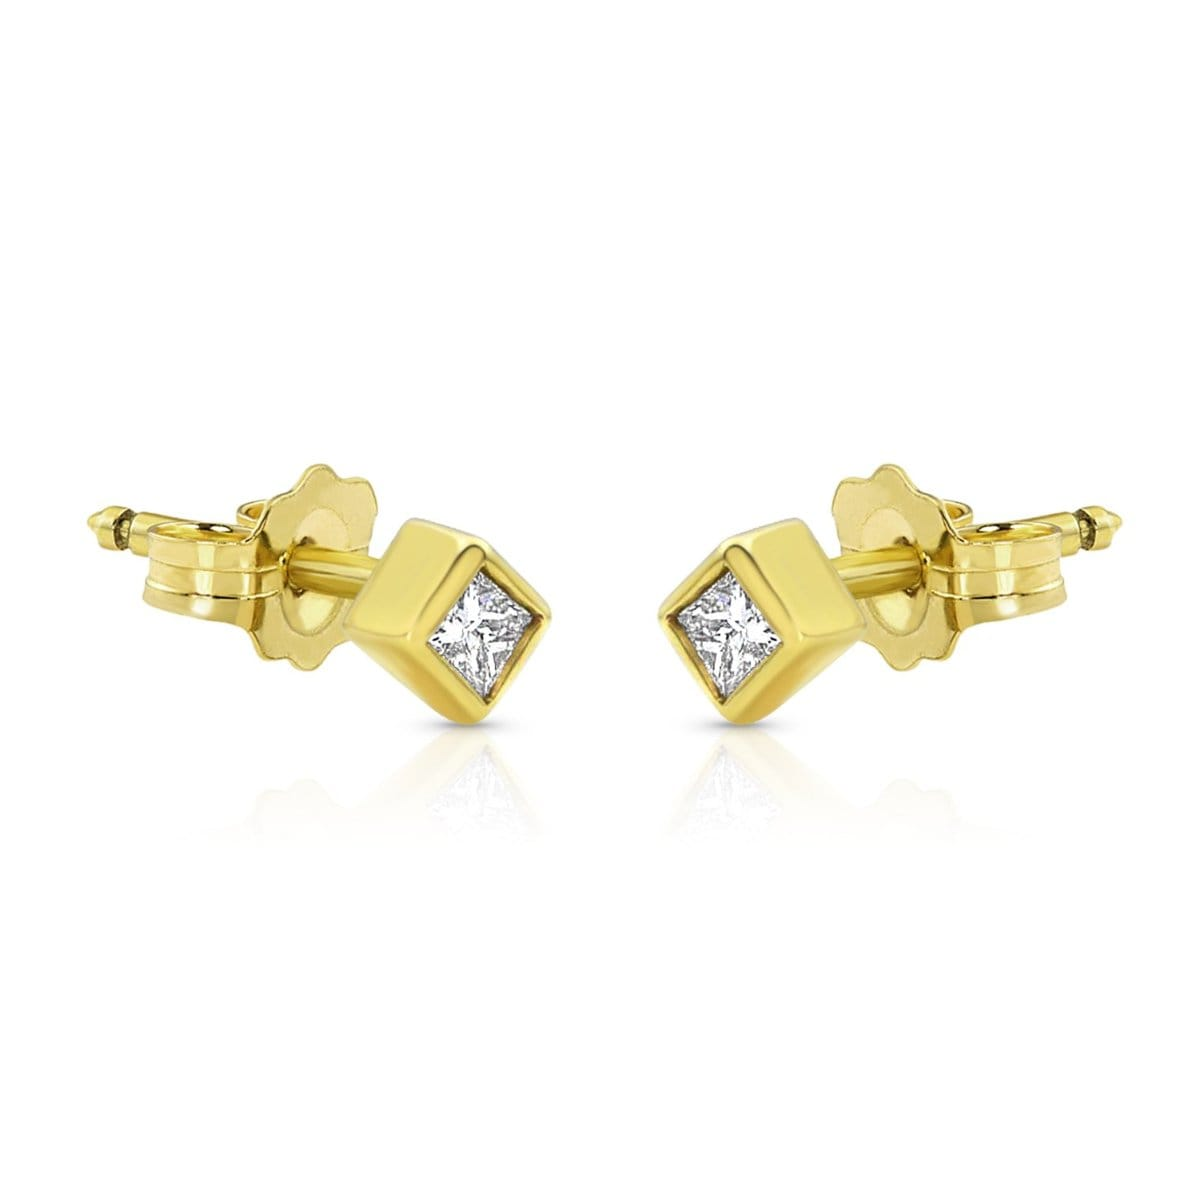 Square Bezel Princess Cut Diamond studs